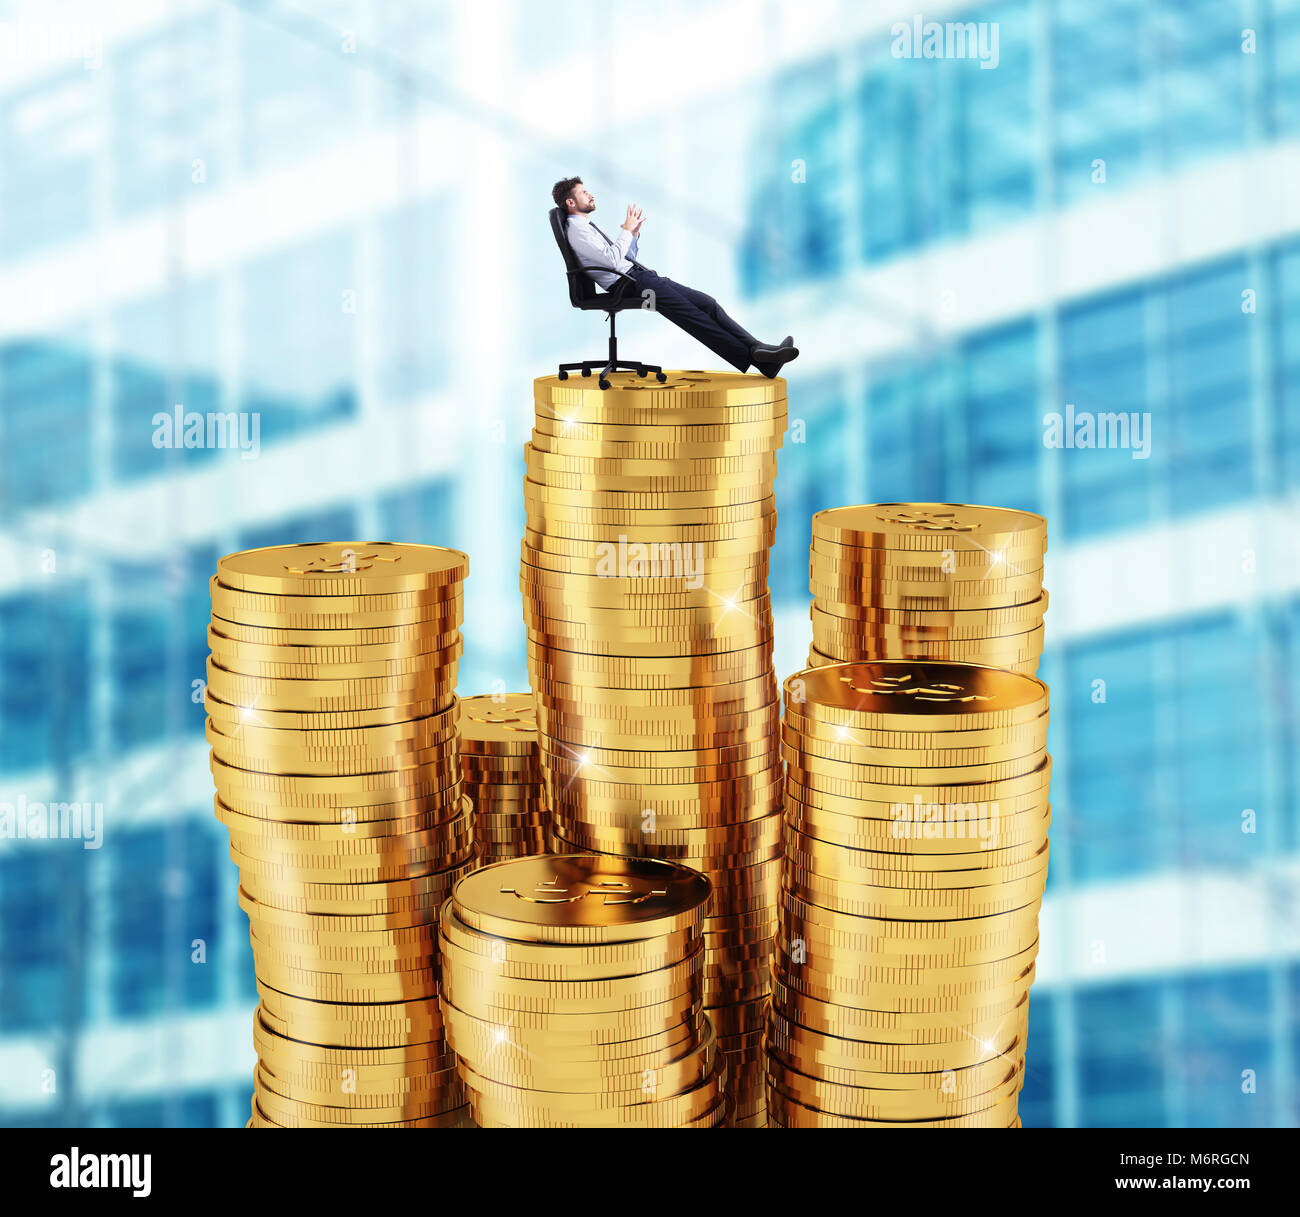 Successful businessman relaxing over piles of money. Concept of success and company growth - Stock Image